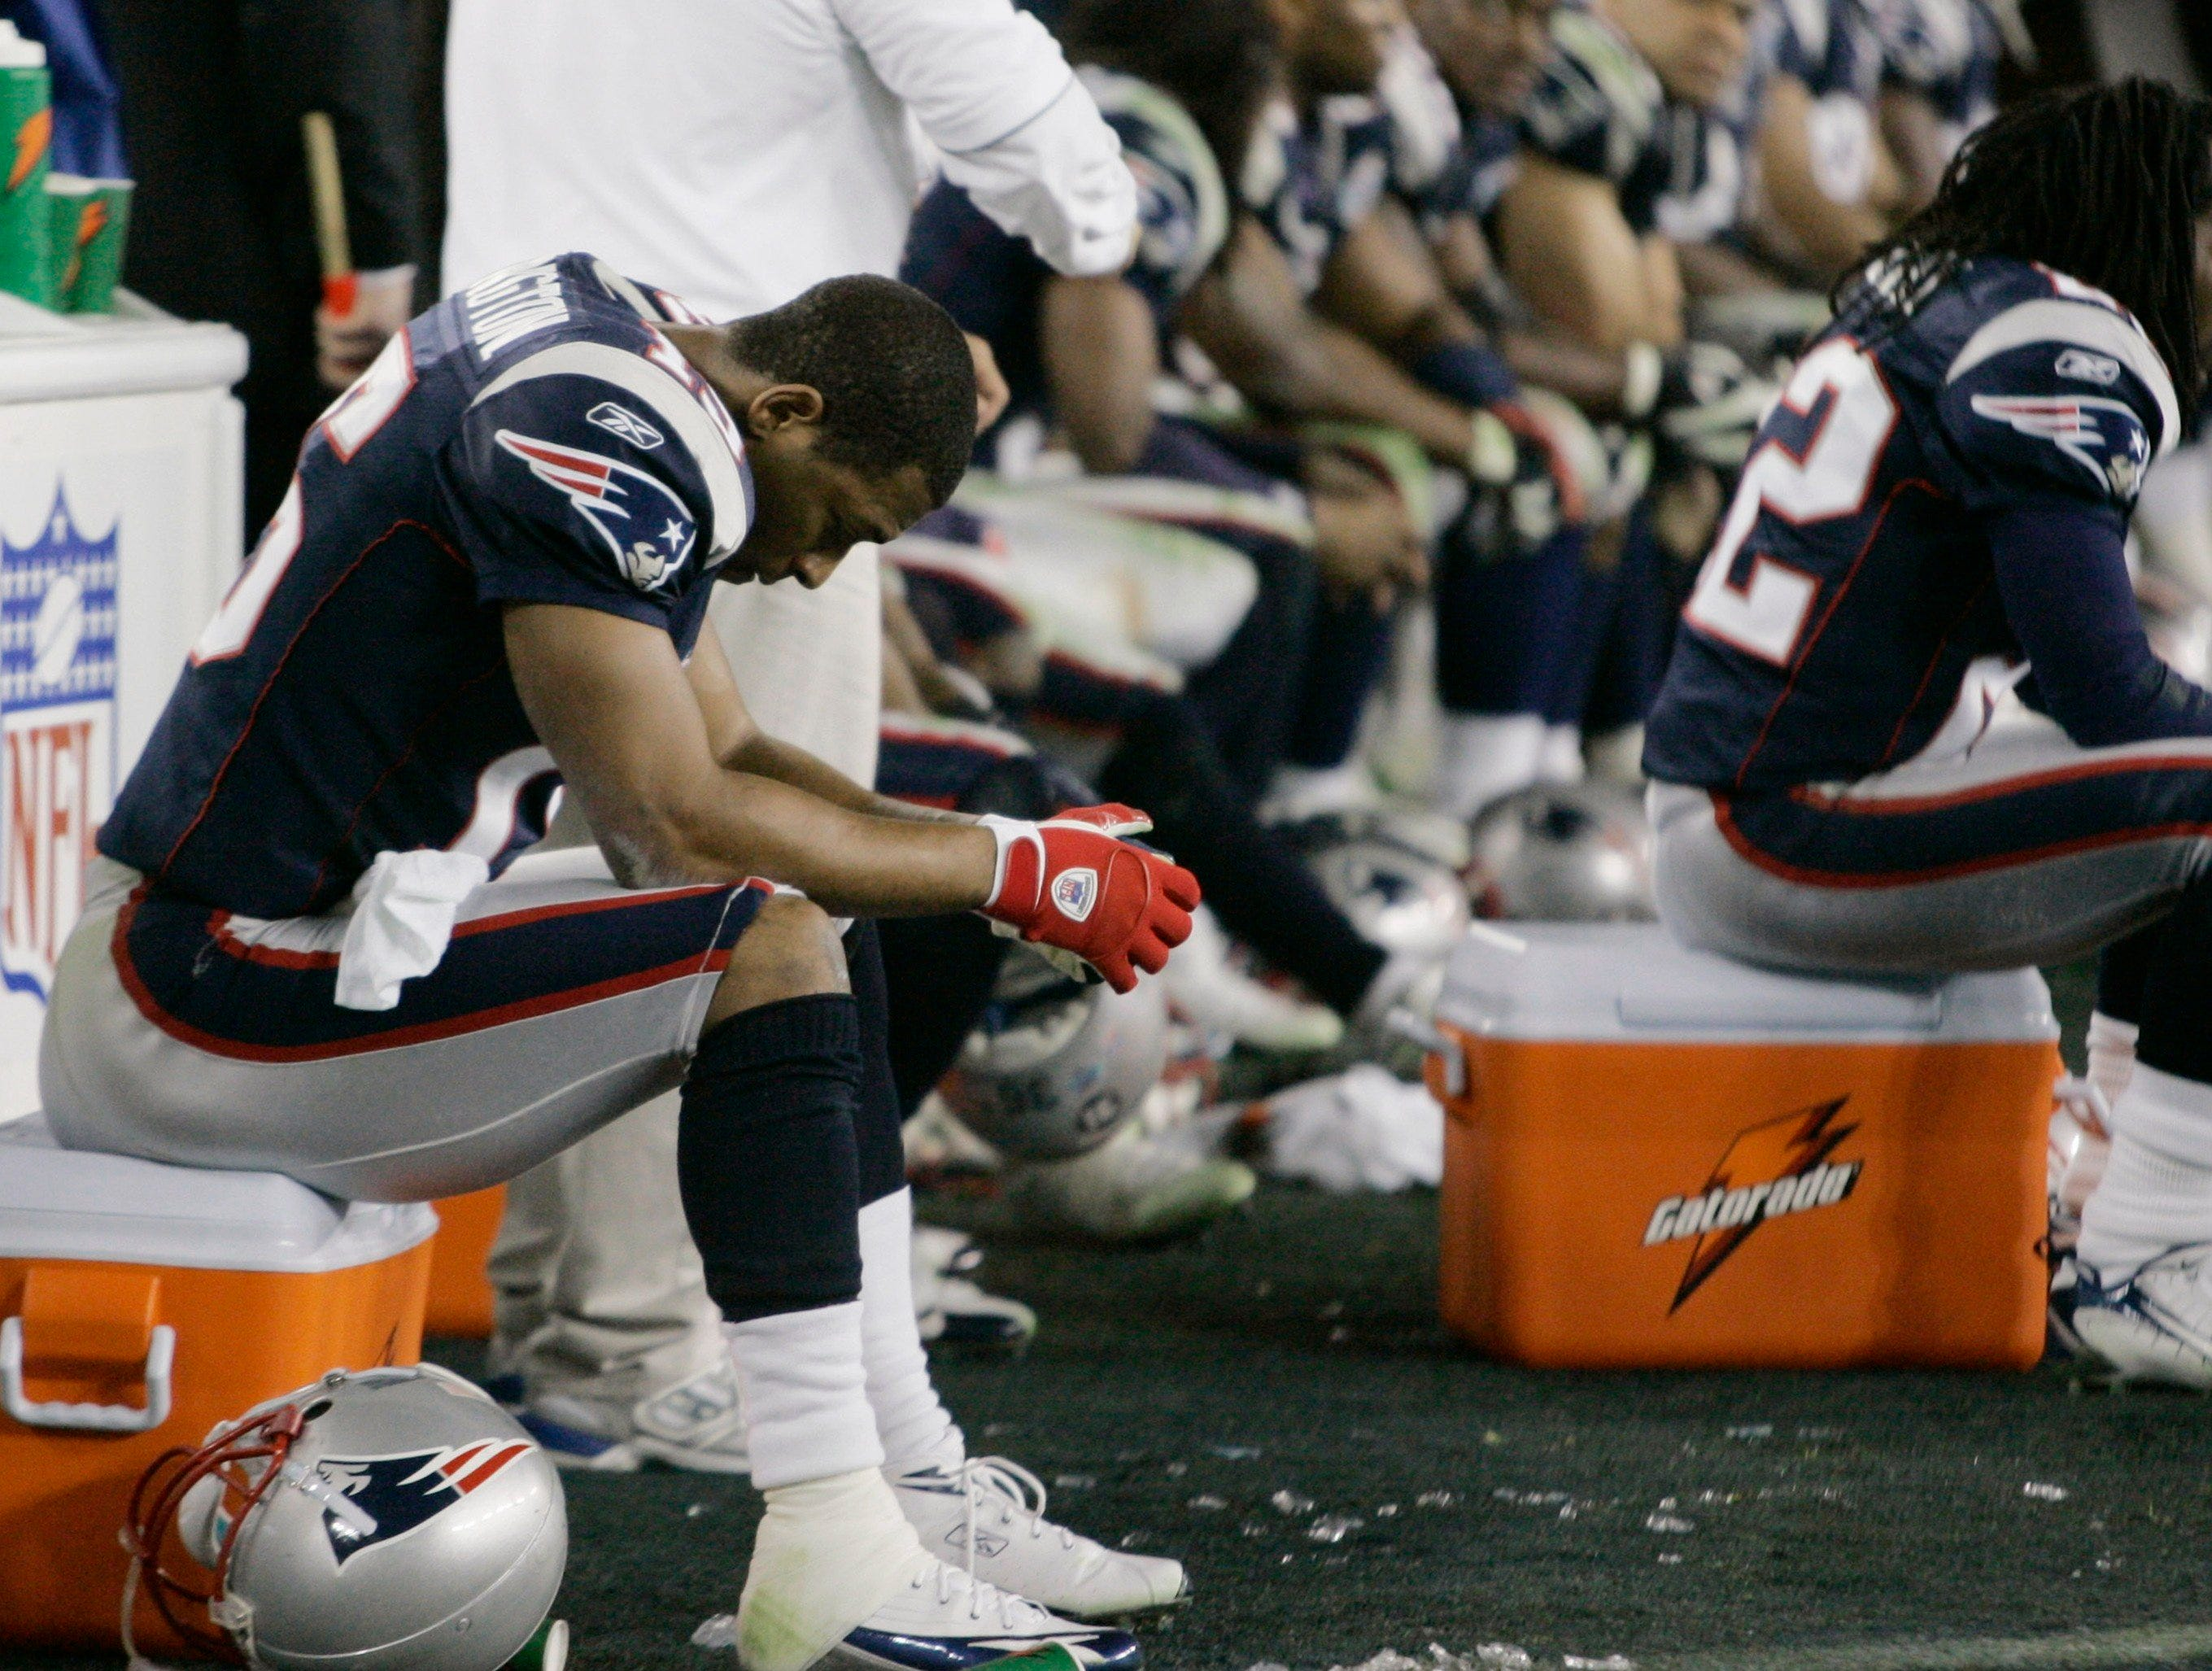 New England Patriots receiver Kelley Washington, left, sits on the bench with his teammates after the Patriots lost to the New York Giants 17-14 in the Super Bowl XLII football game on Sunday, Feb. 3, 2008, in Glendale, Ariz.